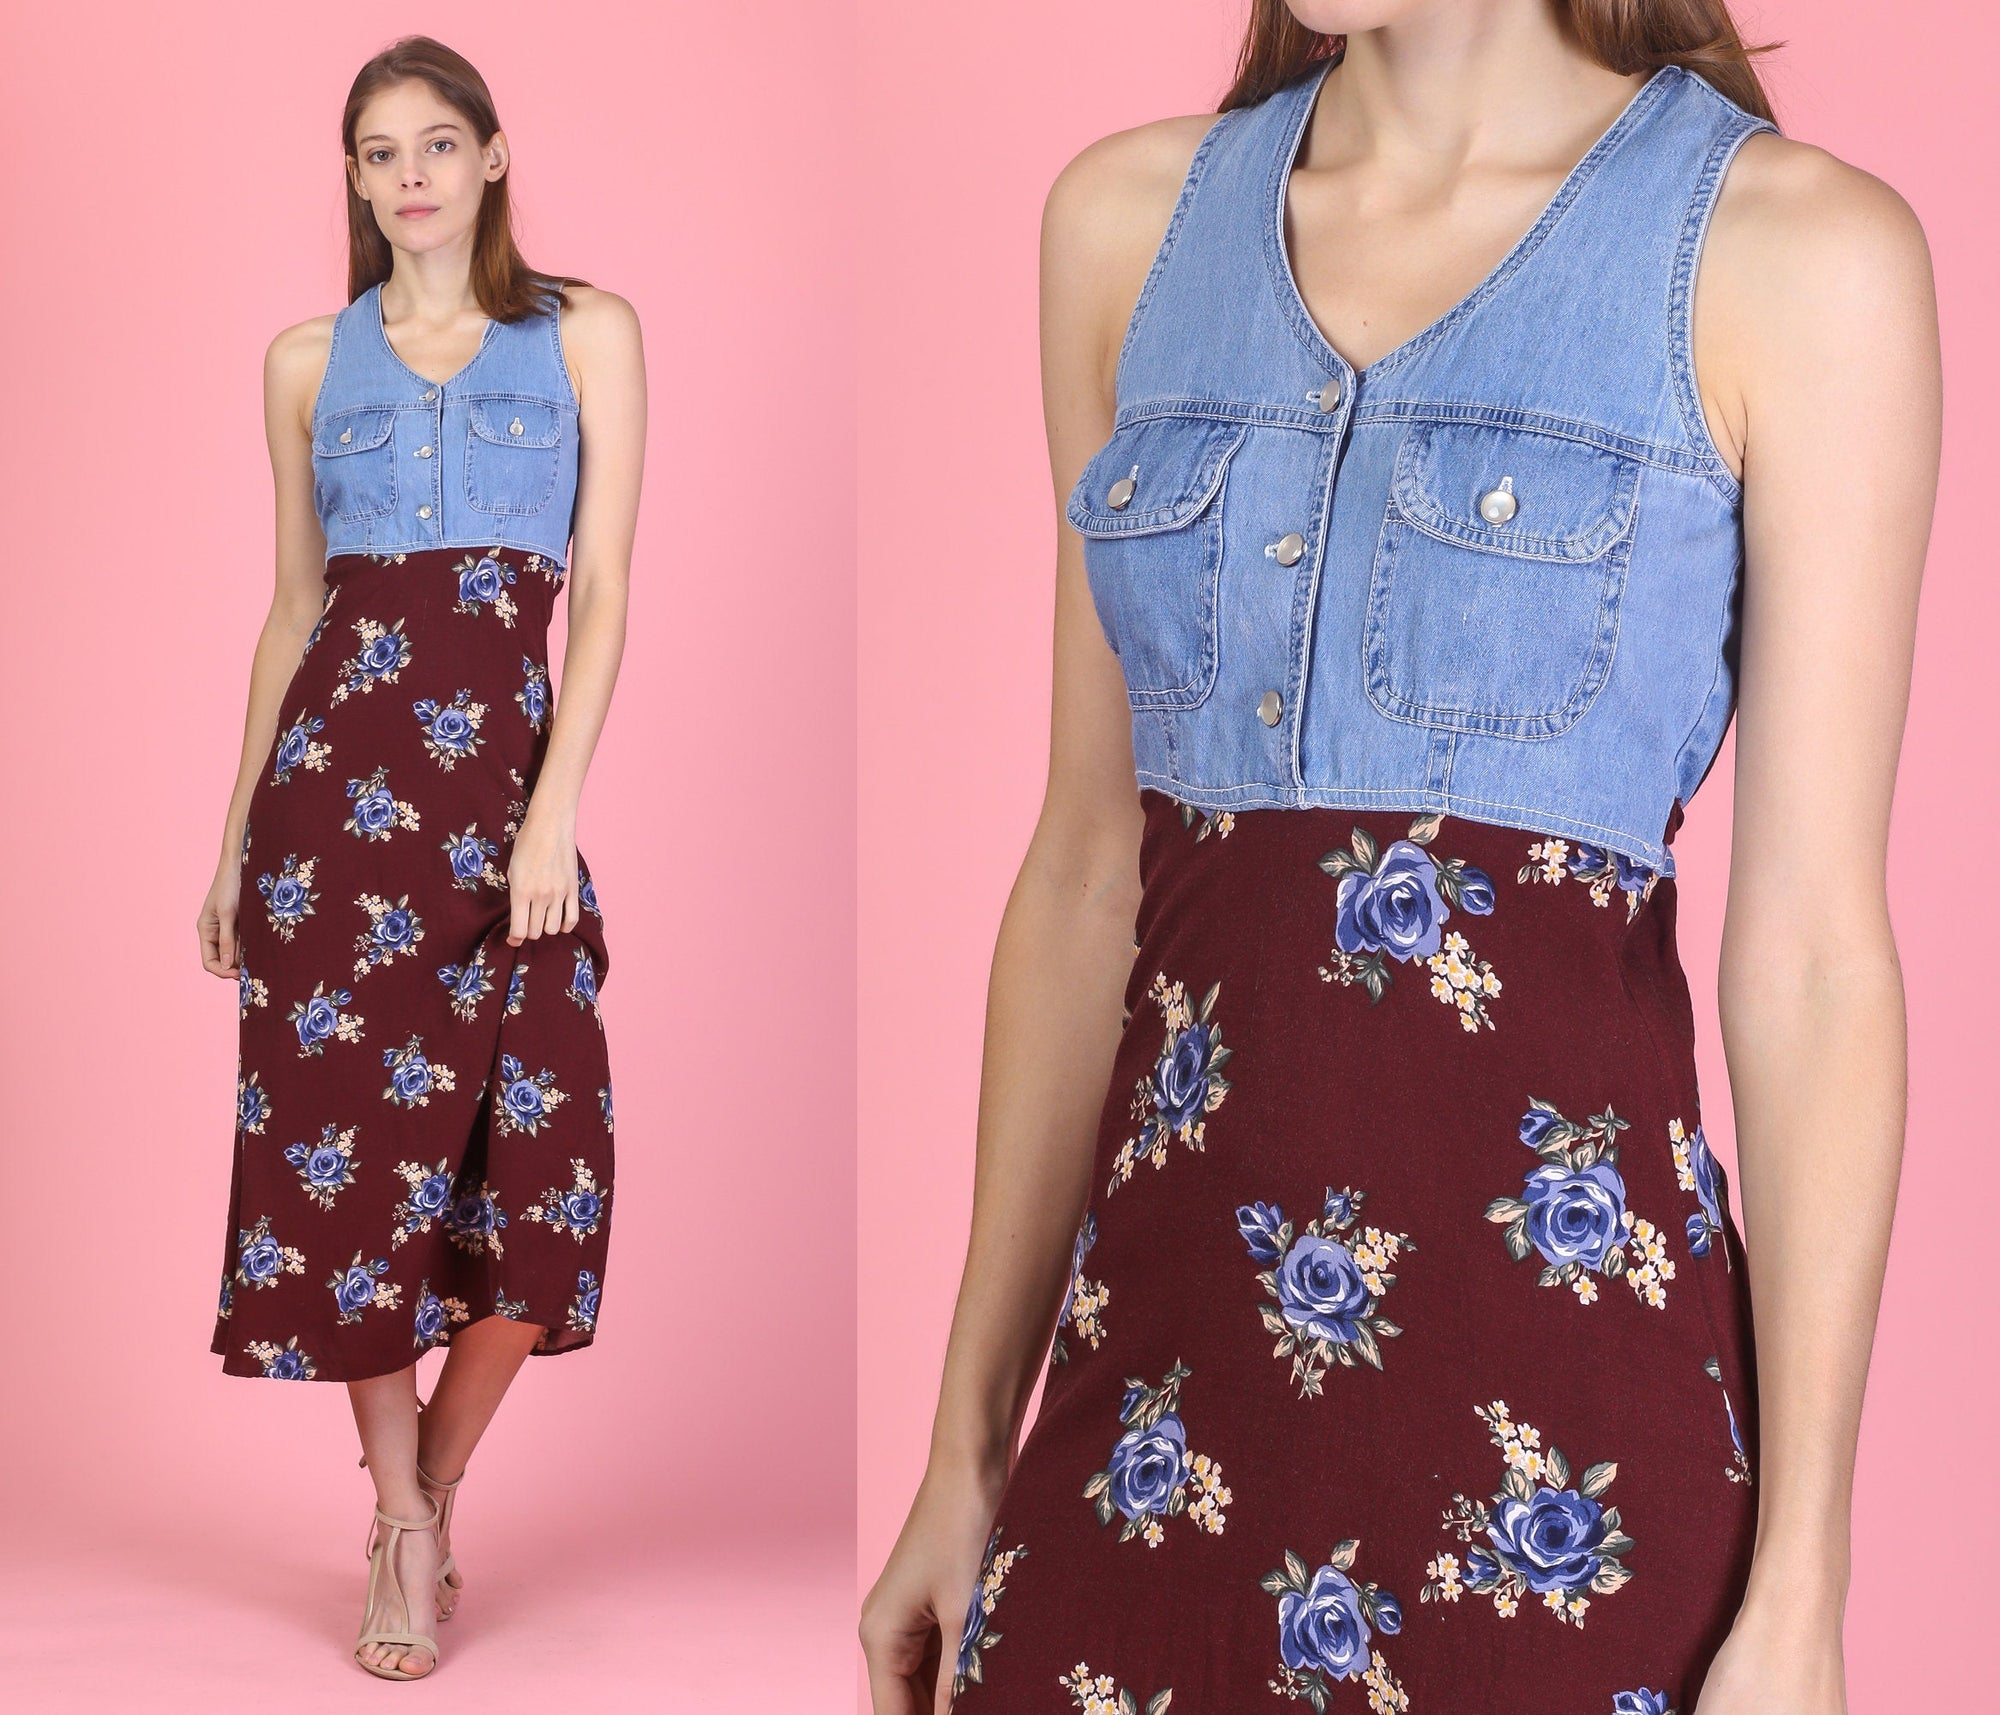 90s Grunge Denim Floral Midi Dress - Extra Small